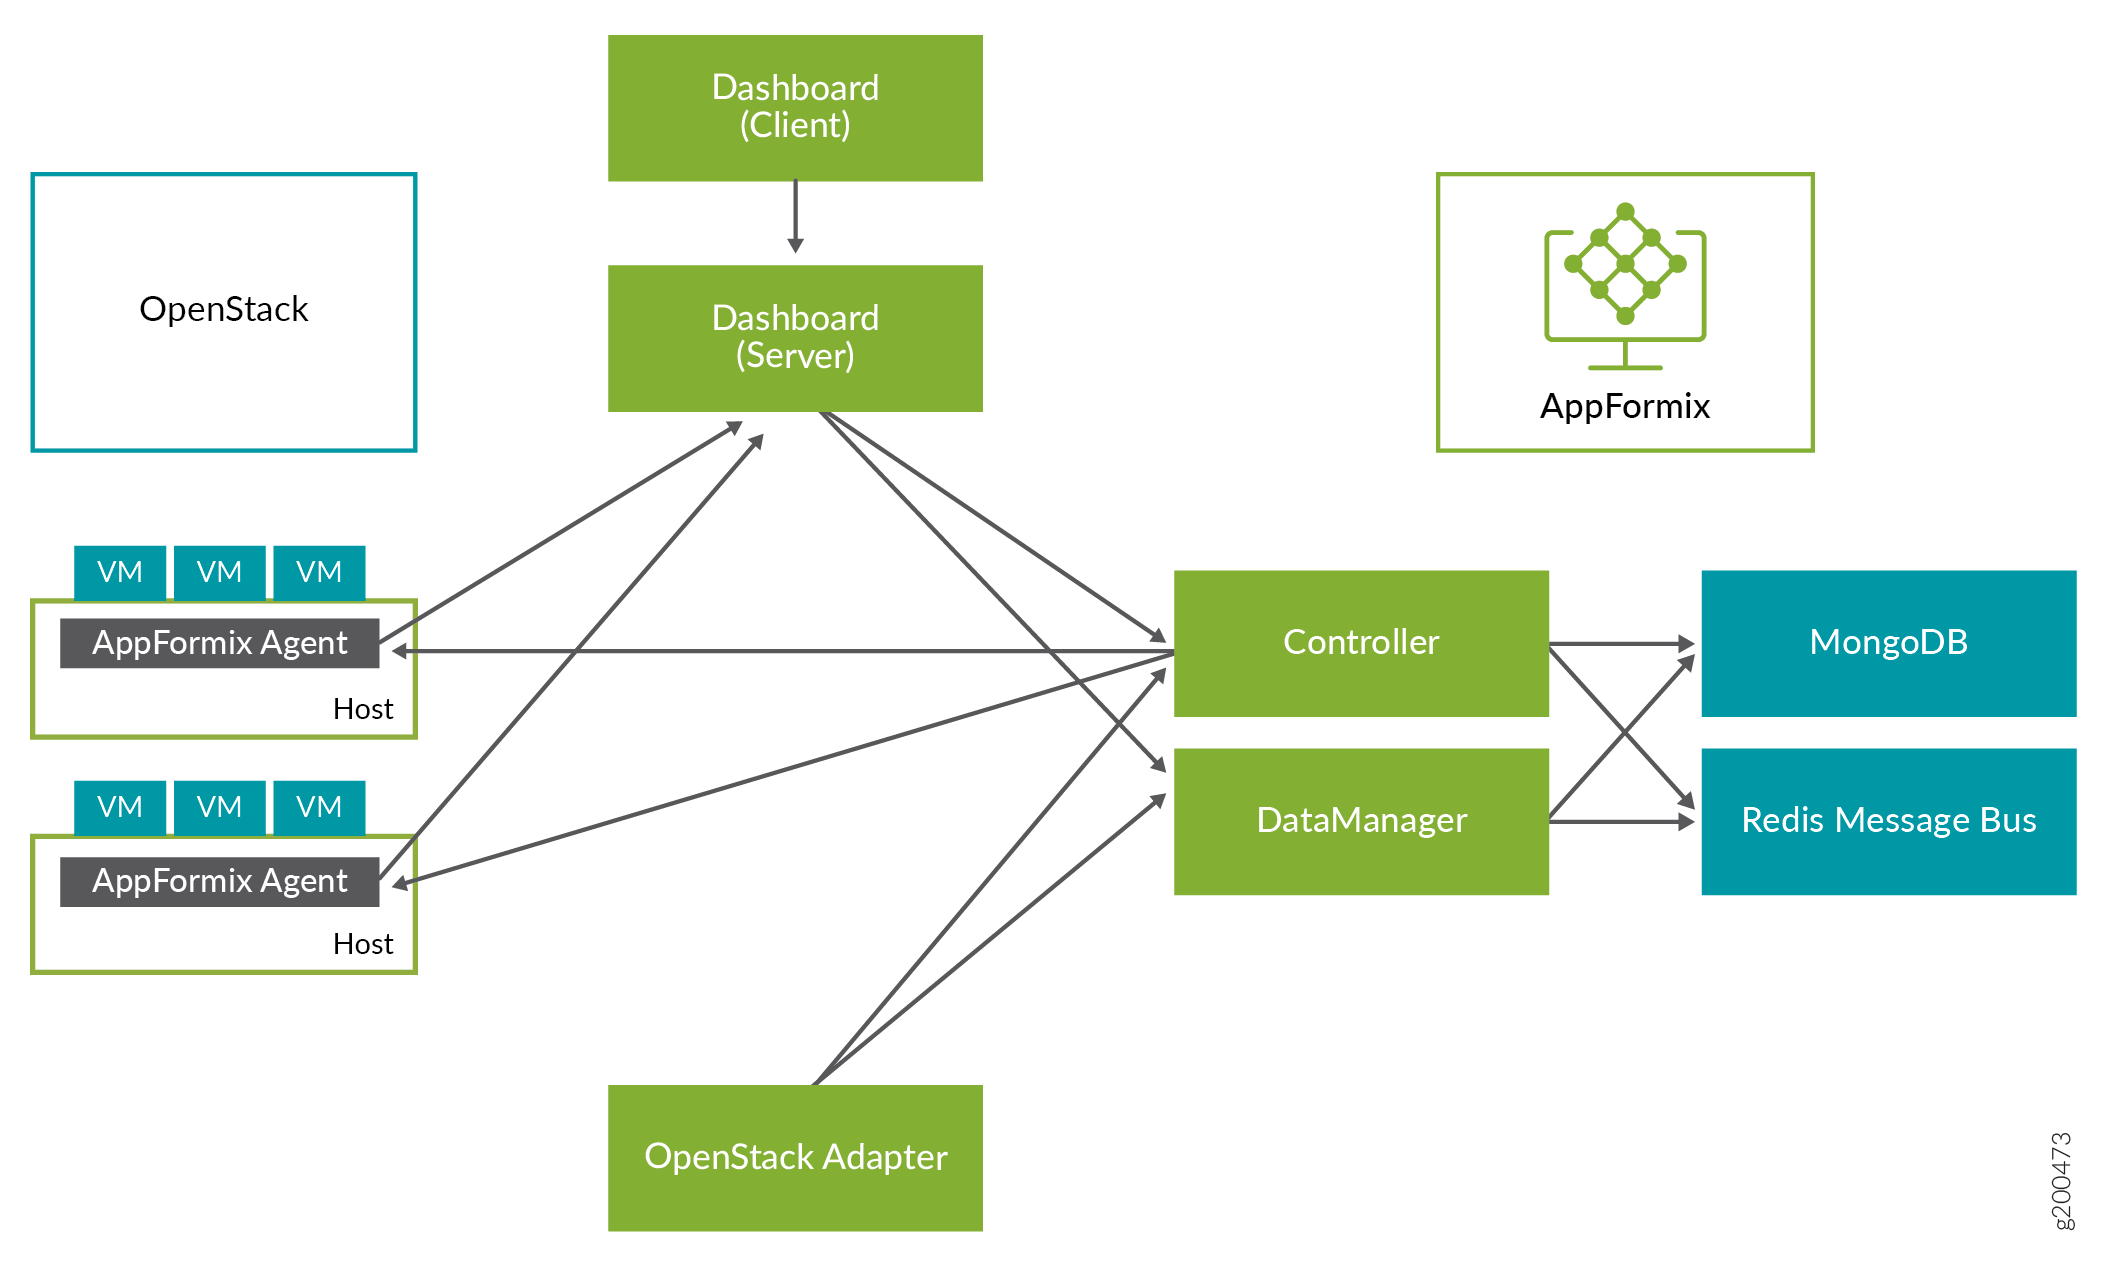 AppFormix Architecture with OpenStack